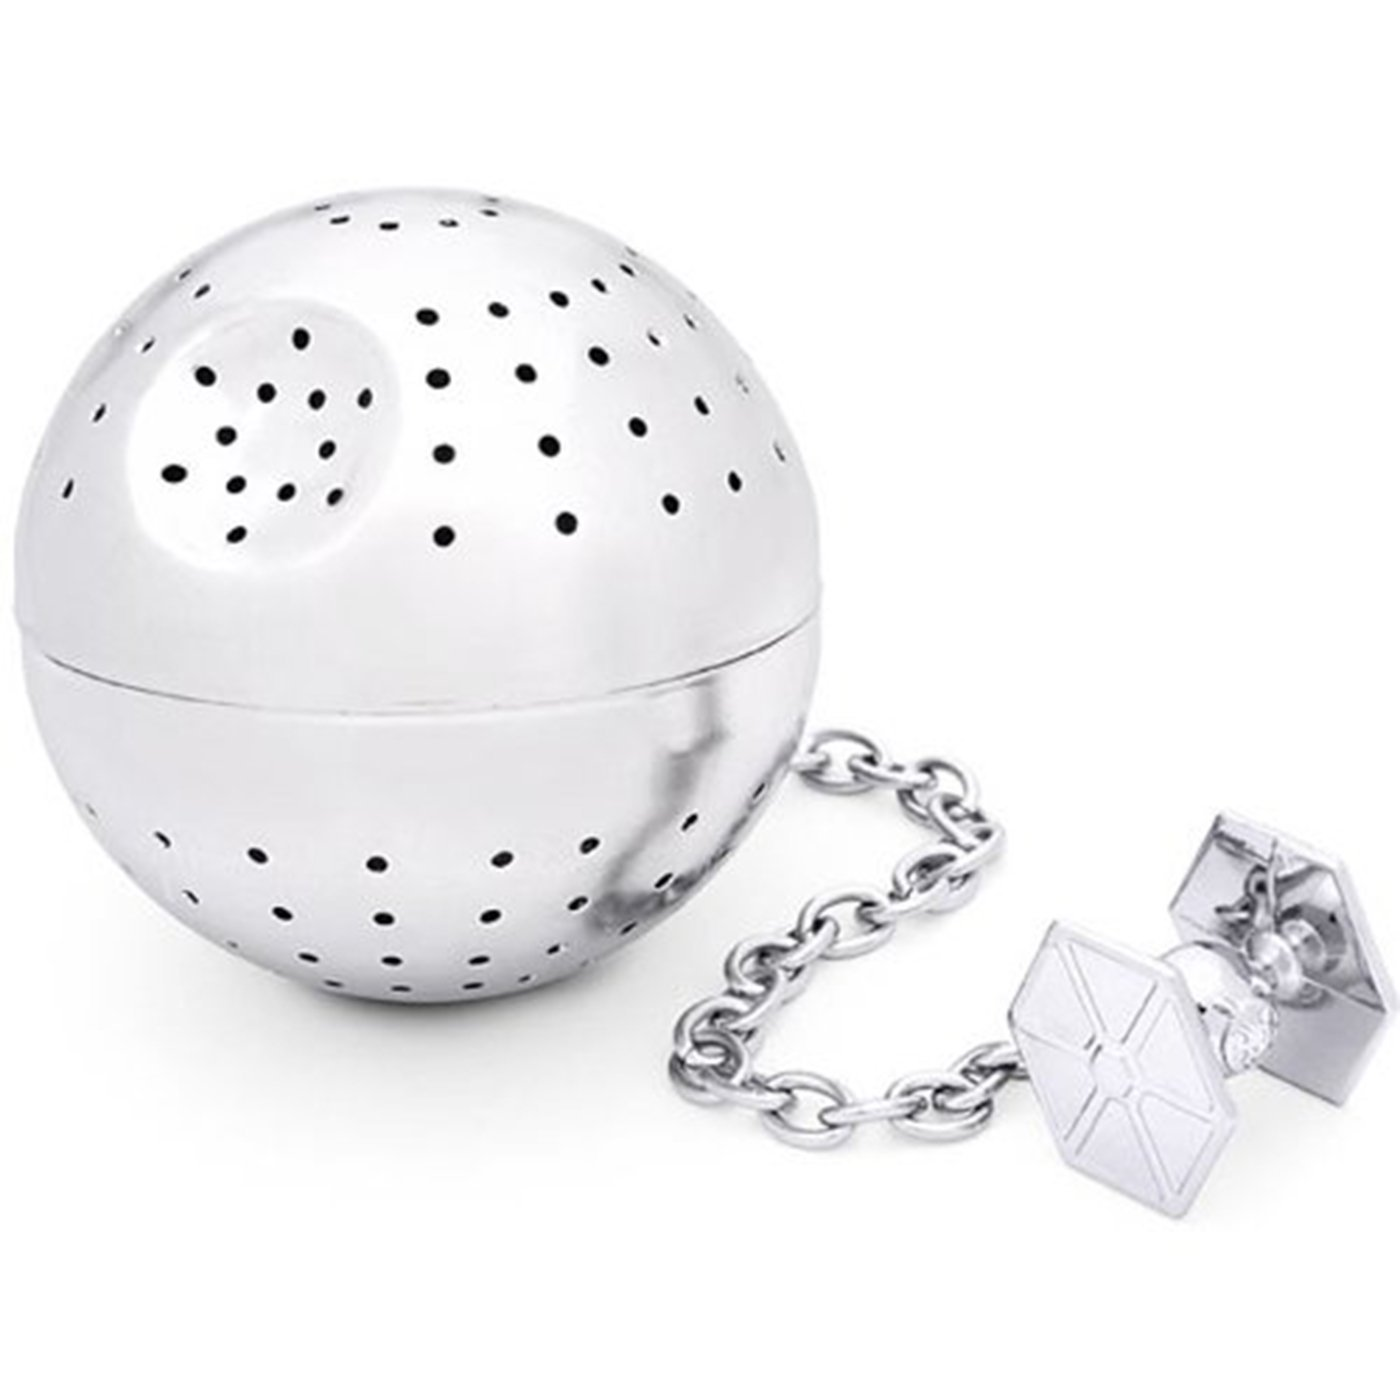 ThinkGeek Officially Licensed Star Wars Death Star Tea Infuser by ThinkGeek